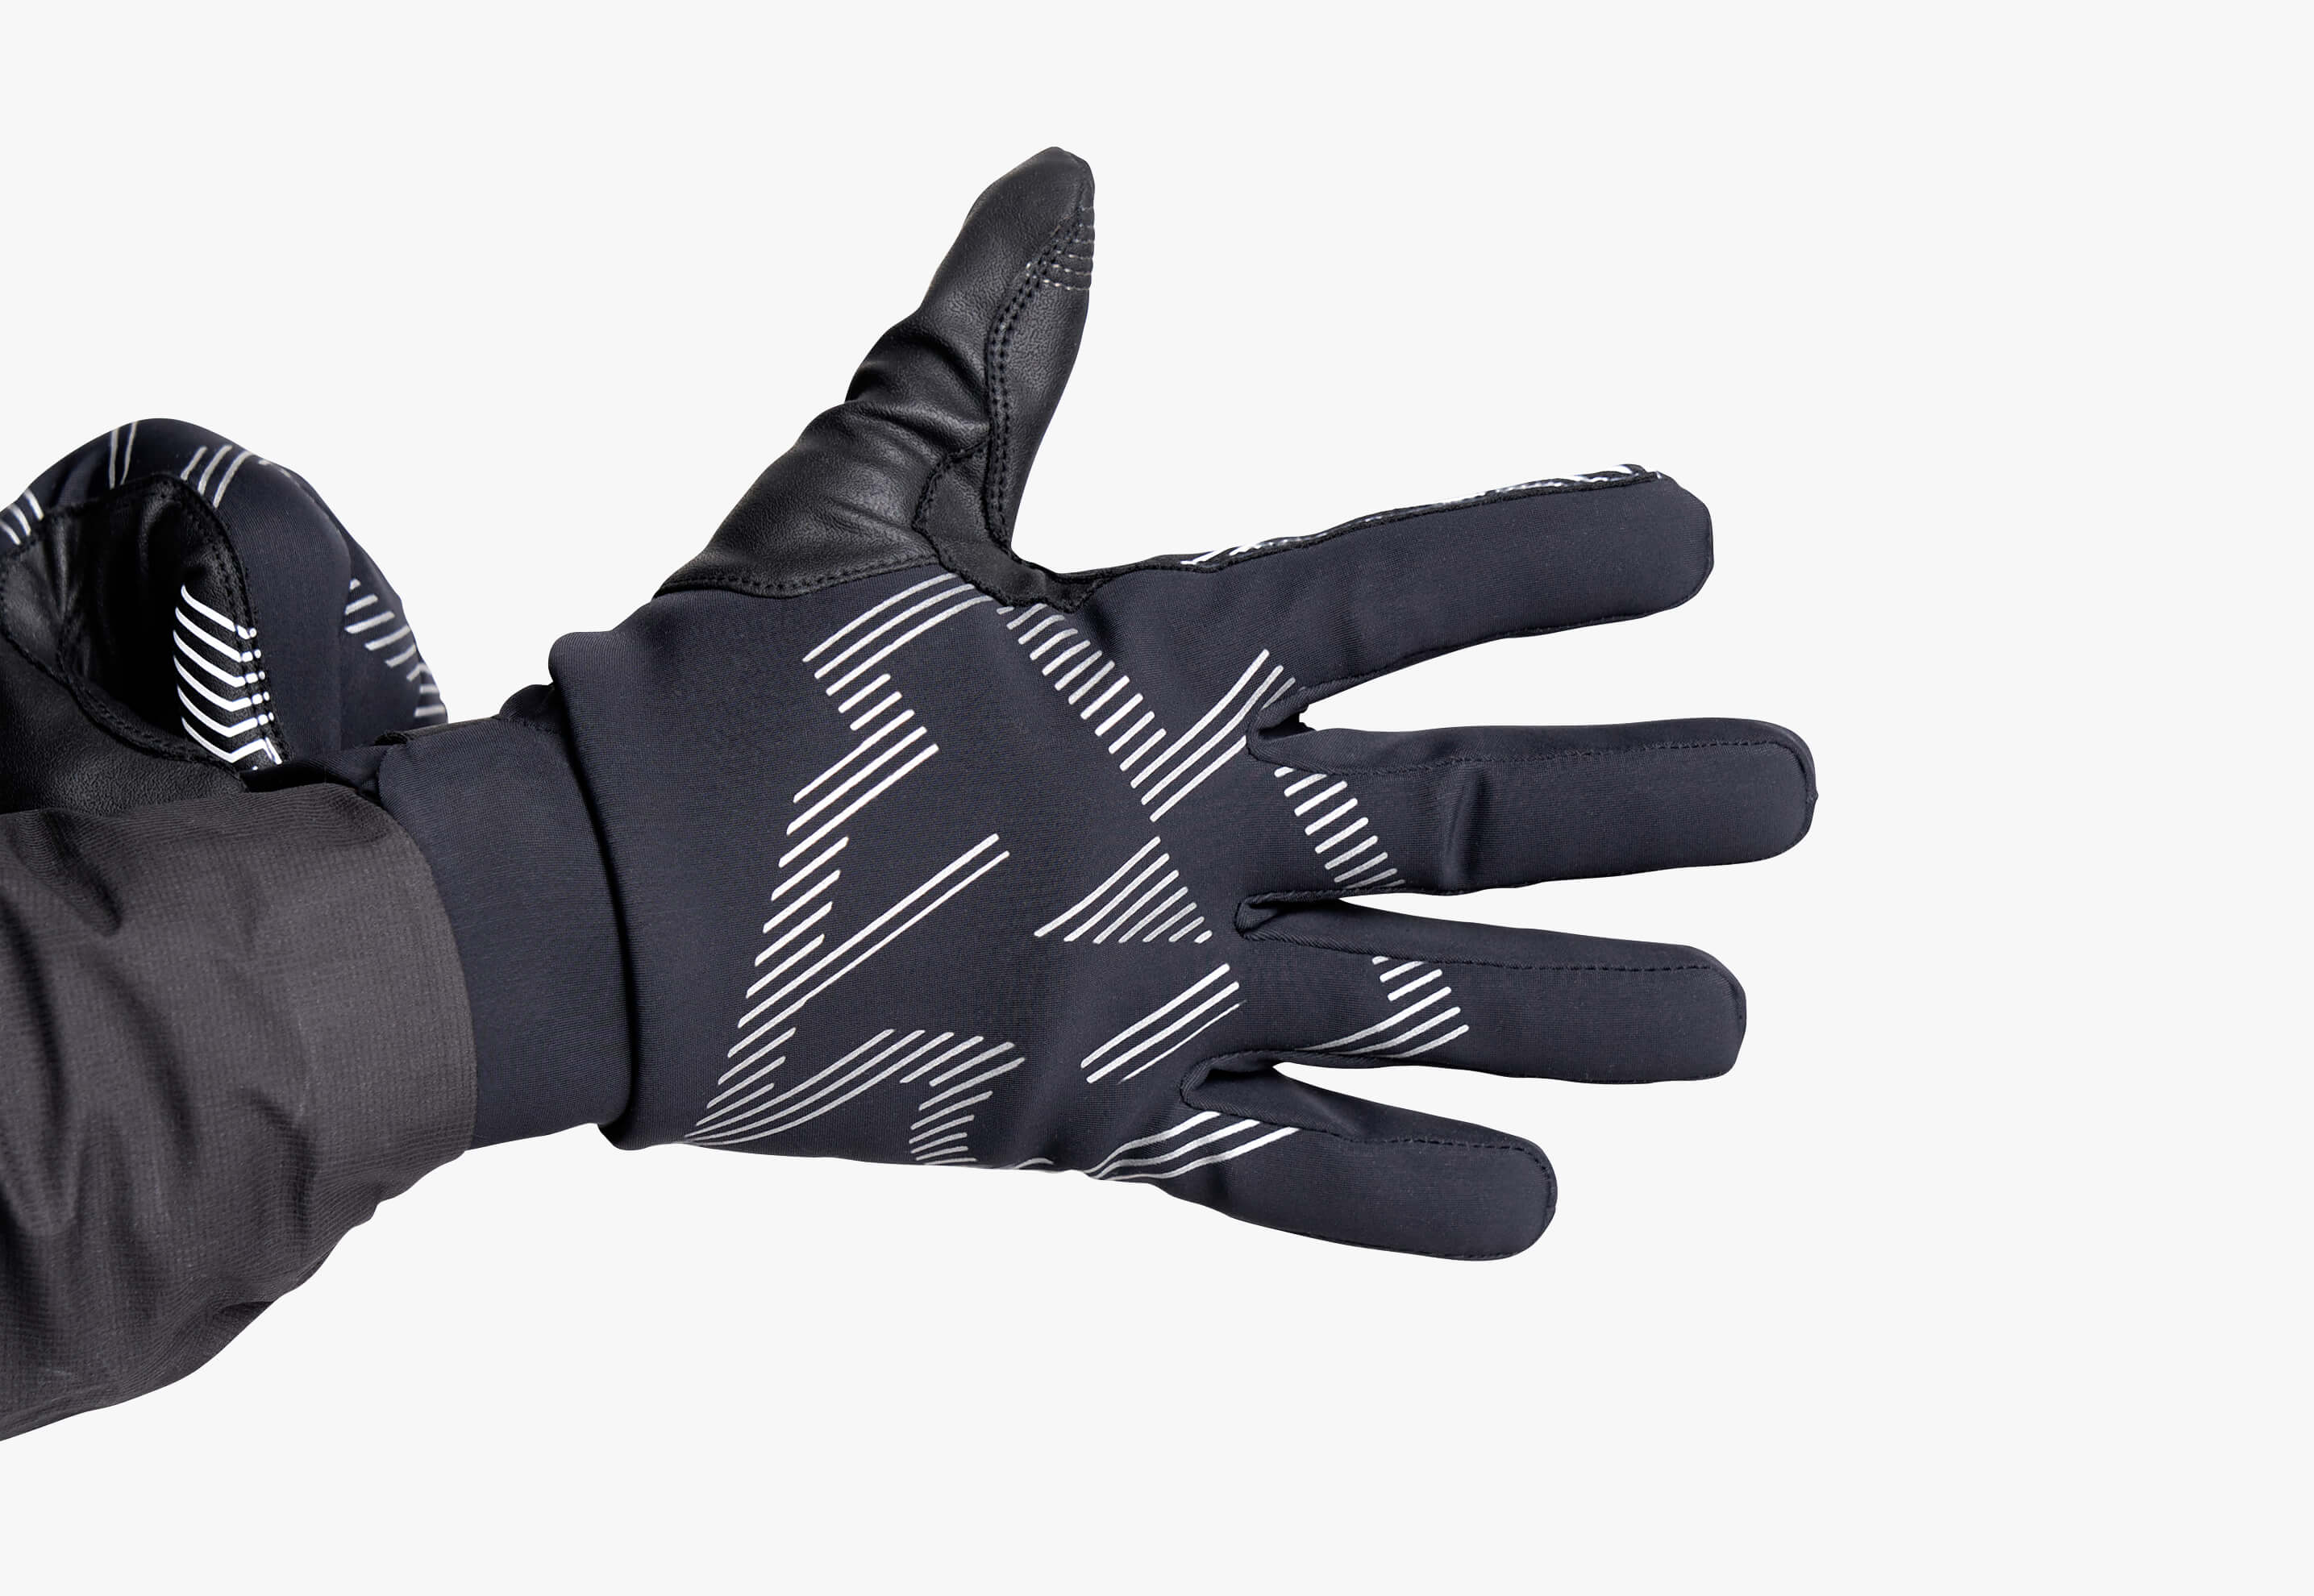 Conspiracy Gloves